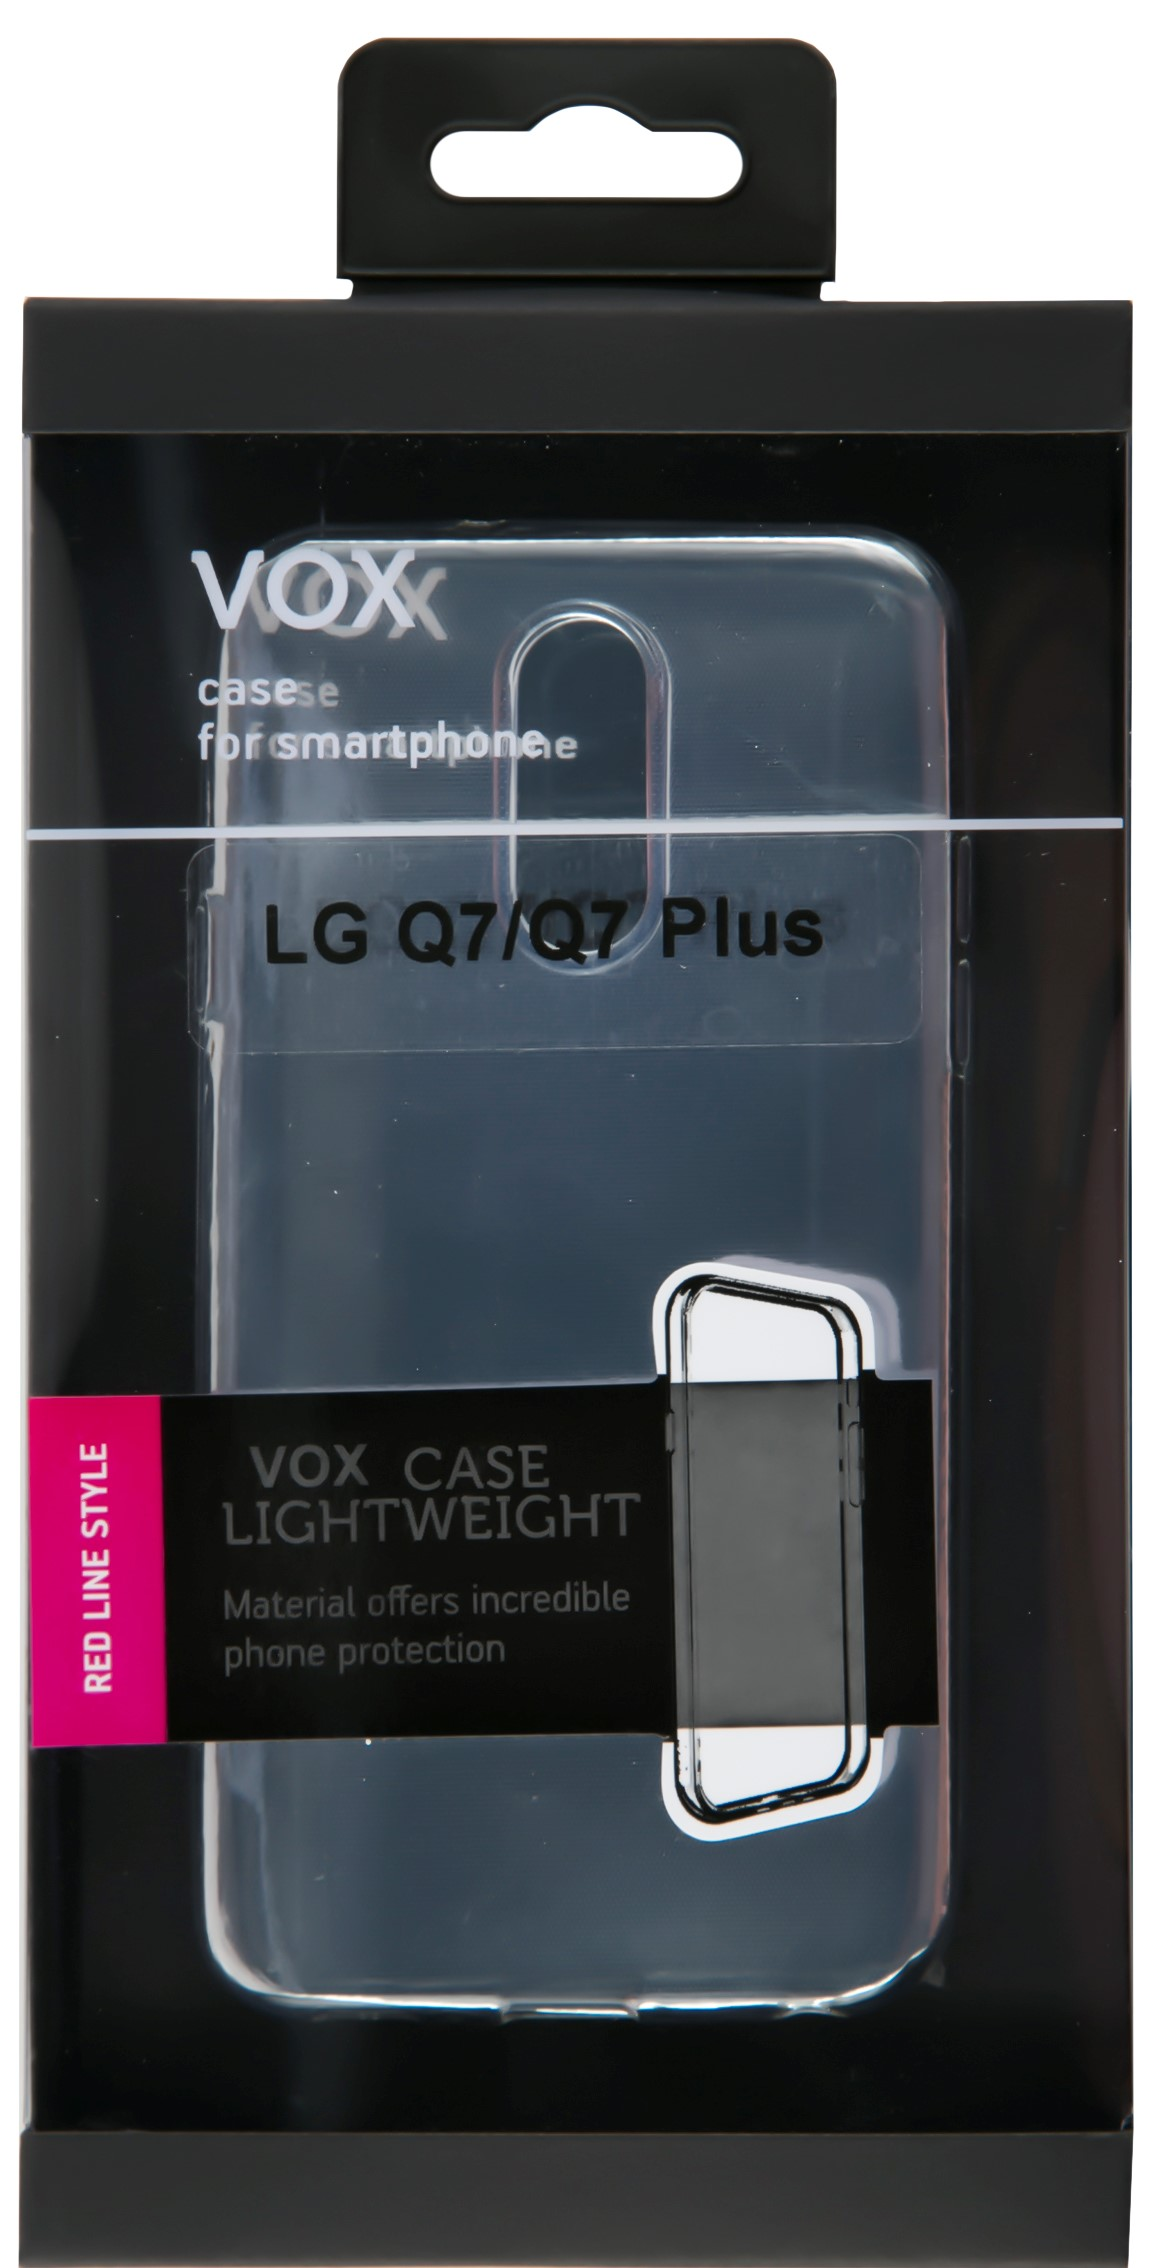 Клип-кейс Vox для LG Q7/Q7 Plus прозрачный ovw2 10 2md nemicon encoder 1000p r new inbox